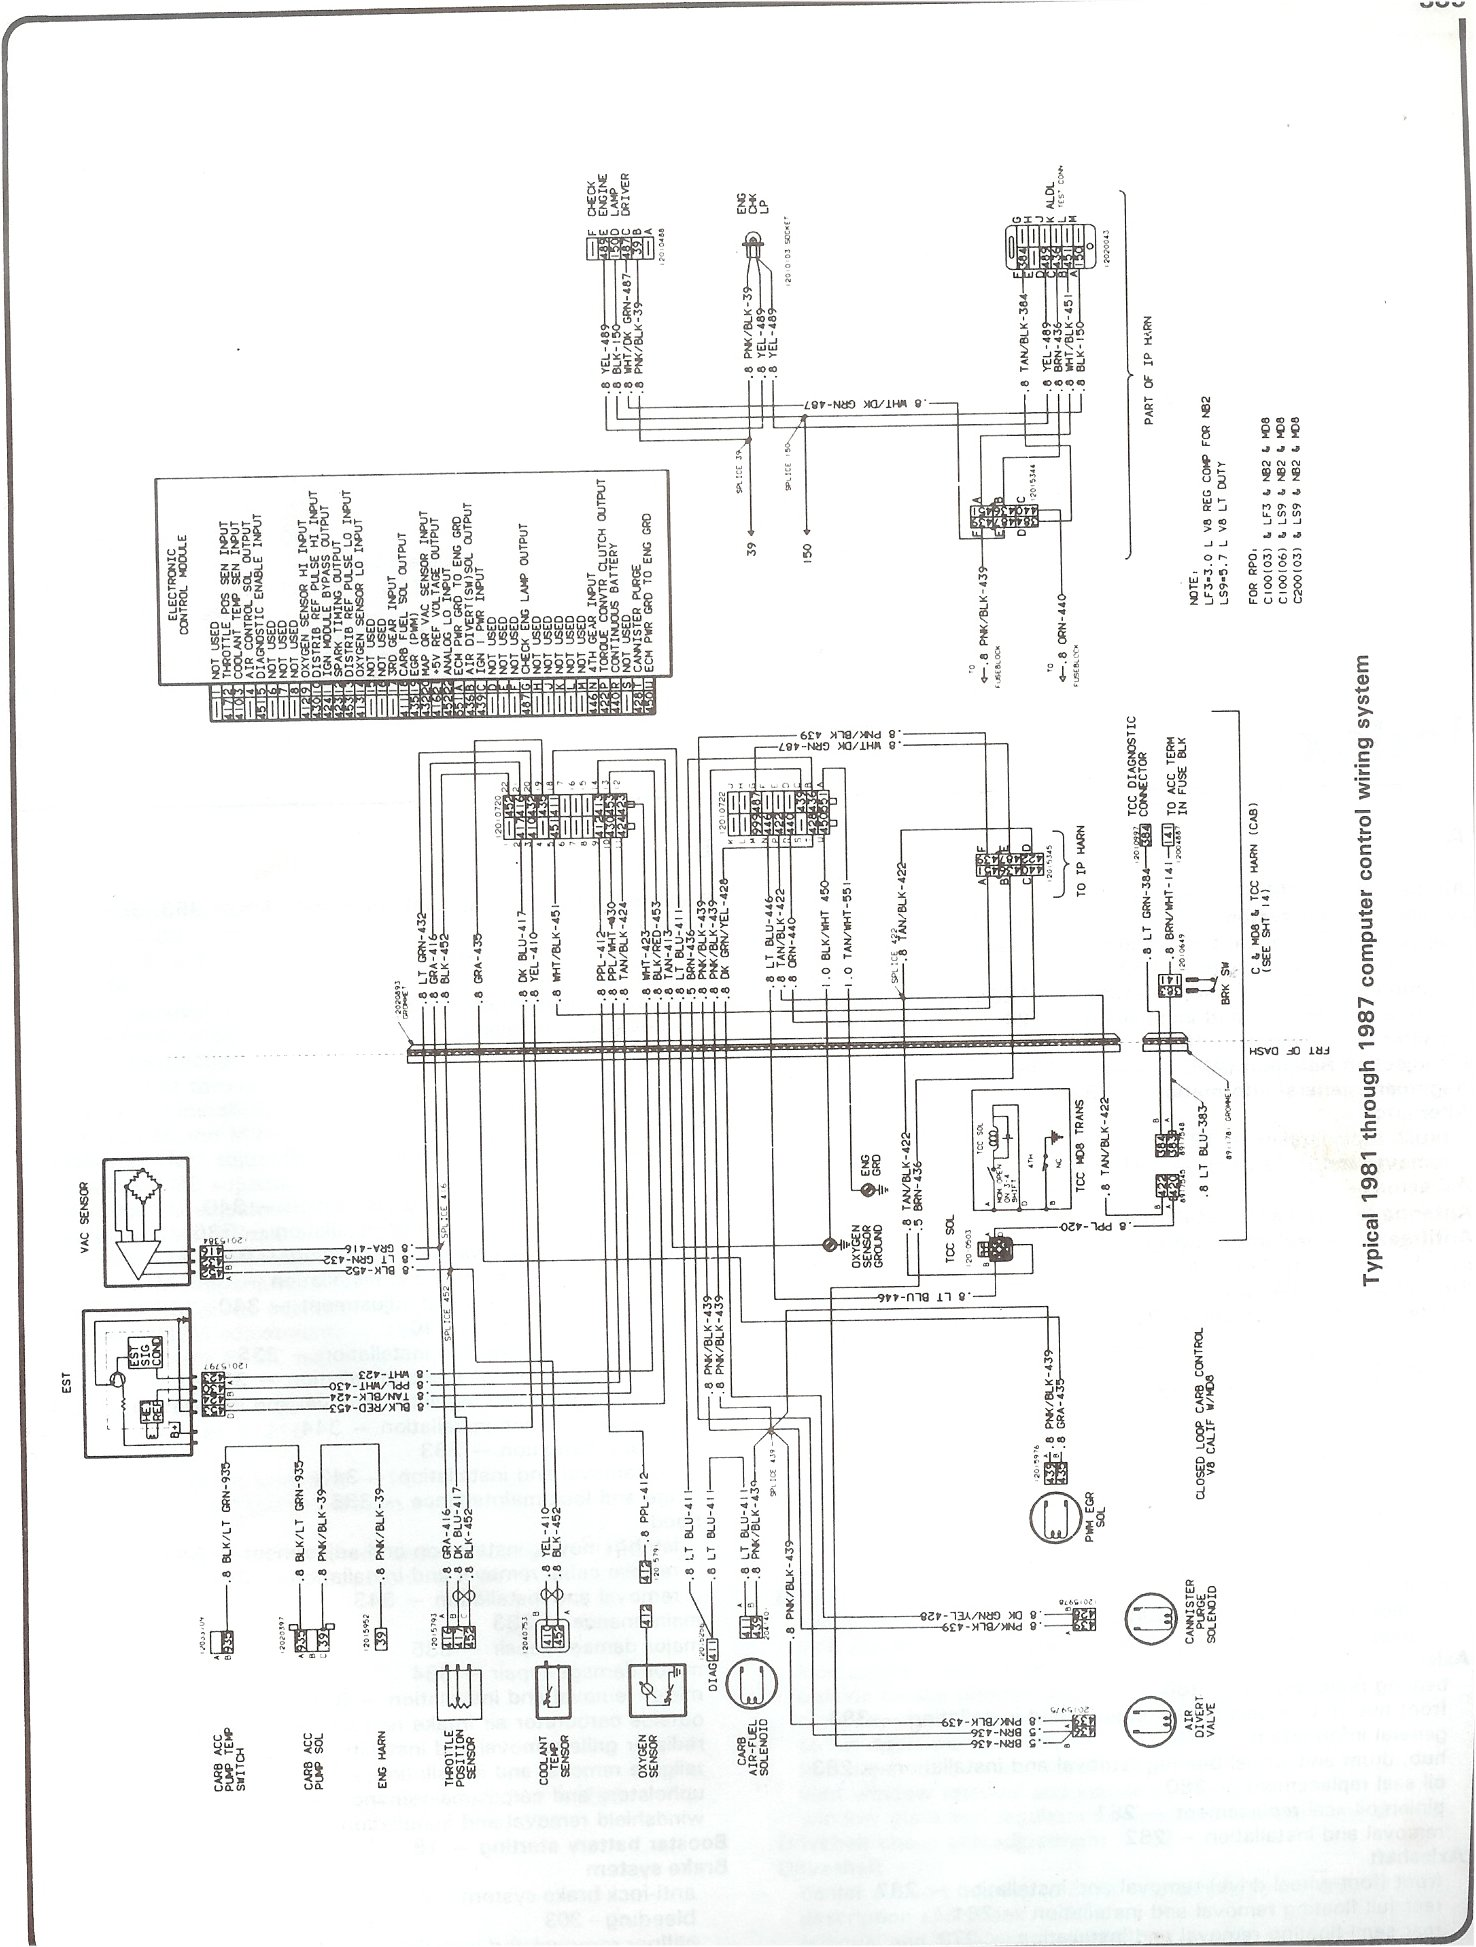 Simple Electrical Wiring Diagrams 89 7000 Archive Of Automotive 2005 Altima Cluster Diagram Complete 73 87 Rh Forum 87chevytrucks Com